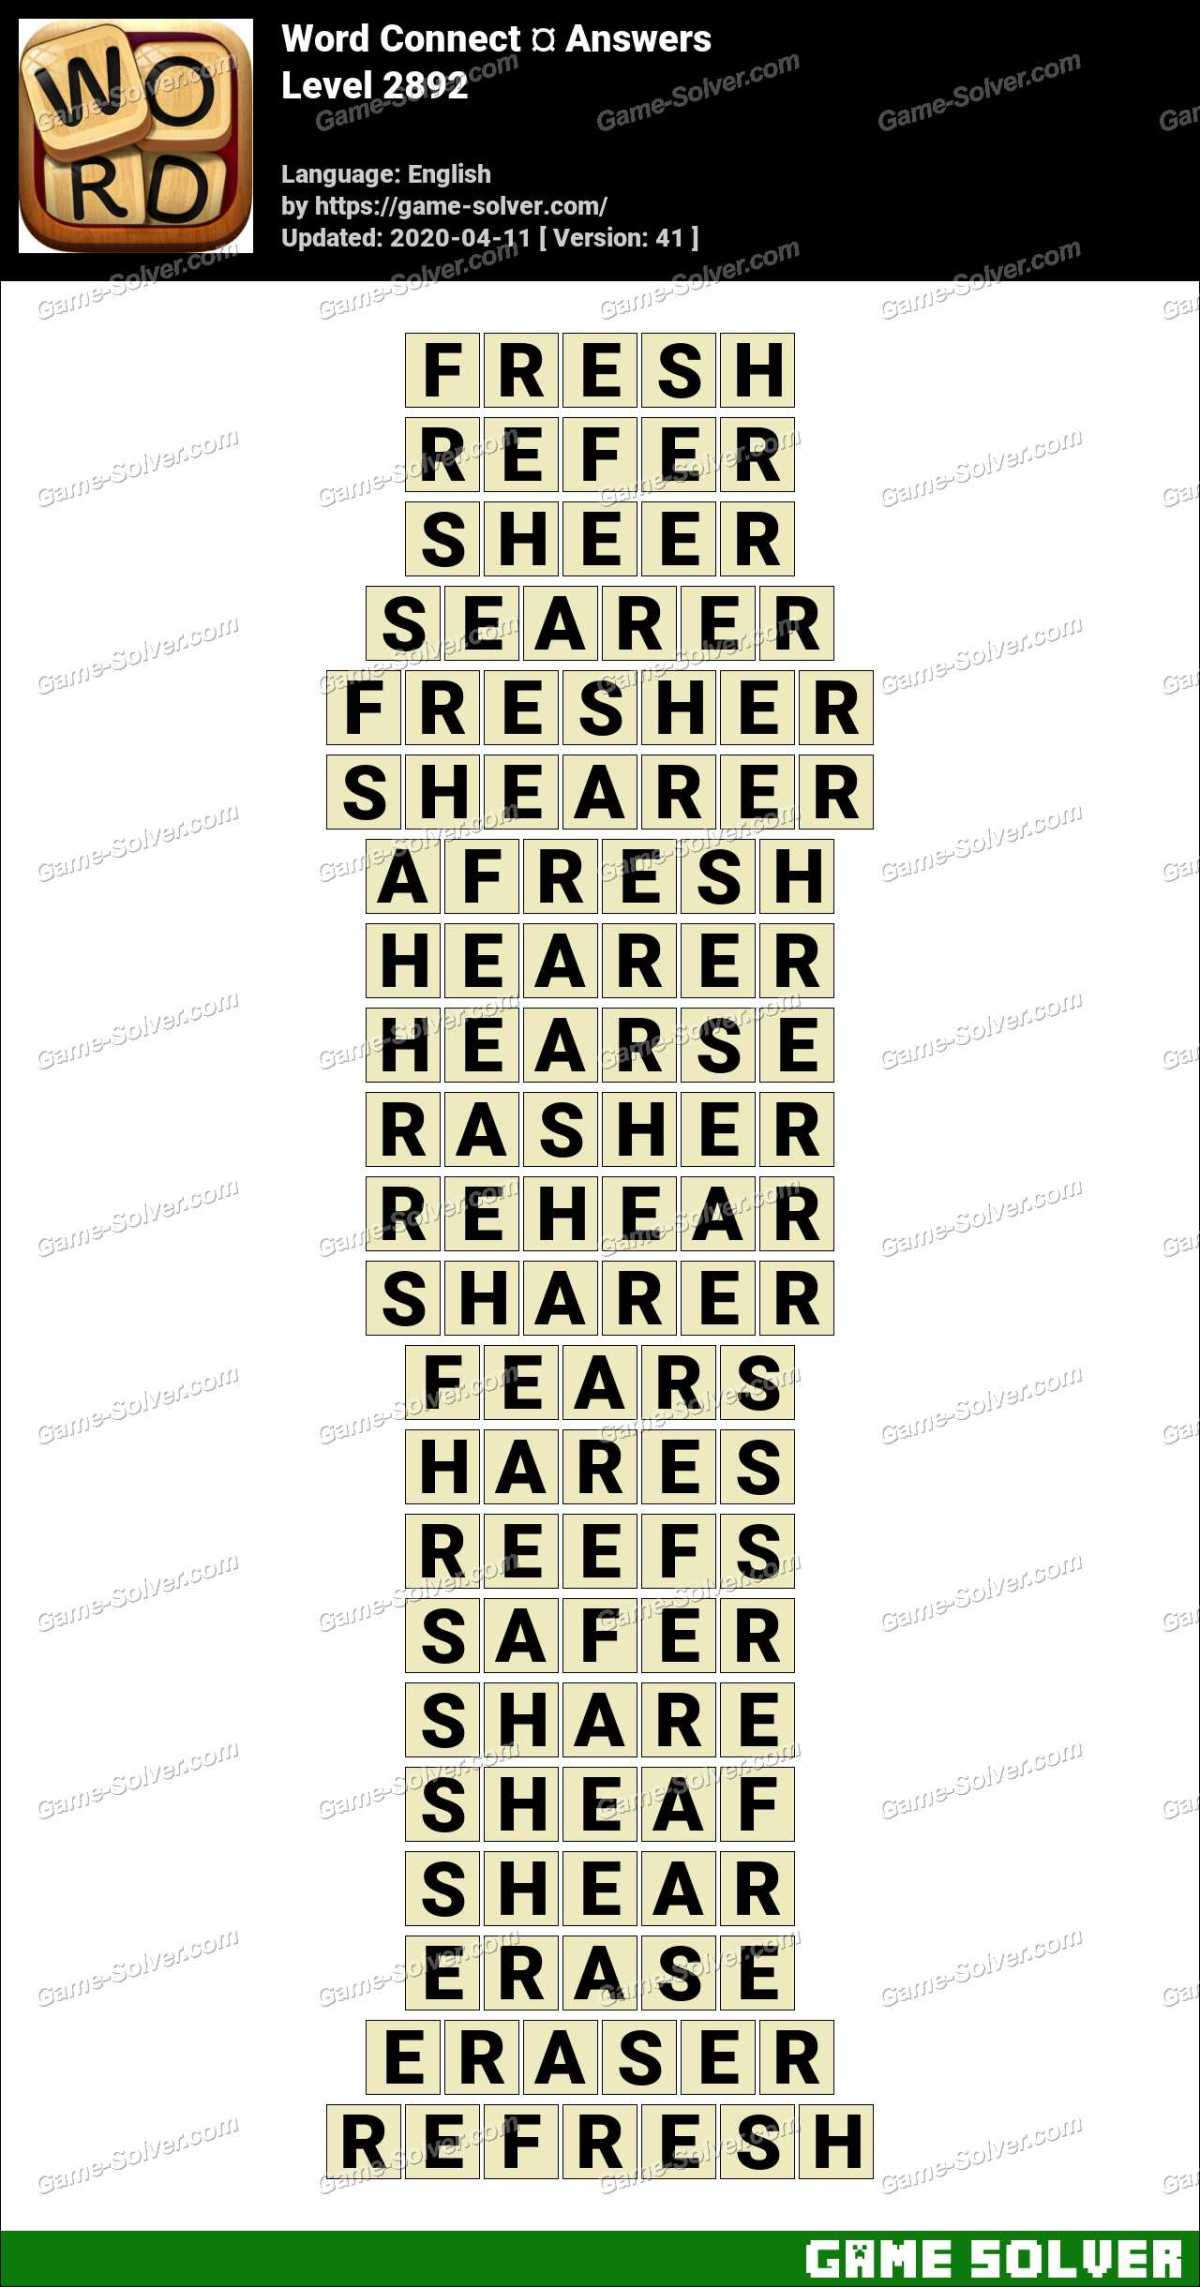 Word Connect Level 2892 Answers